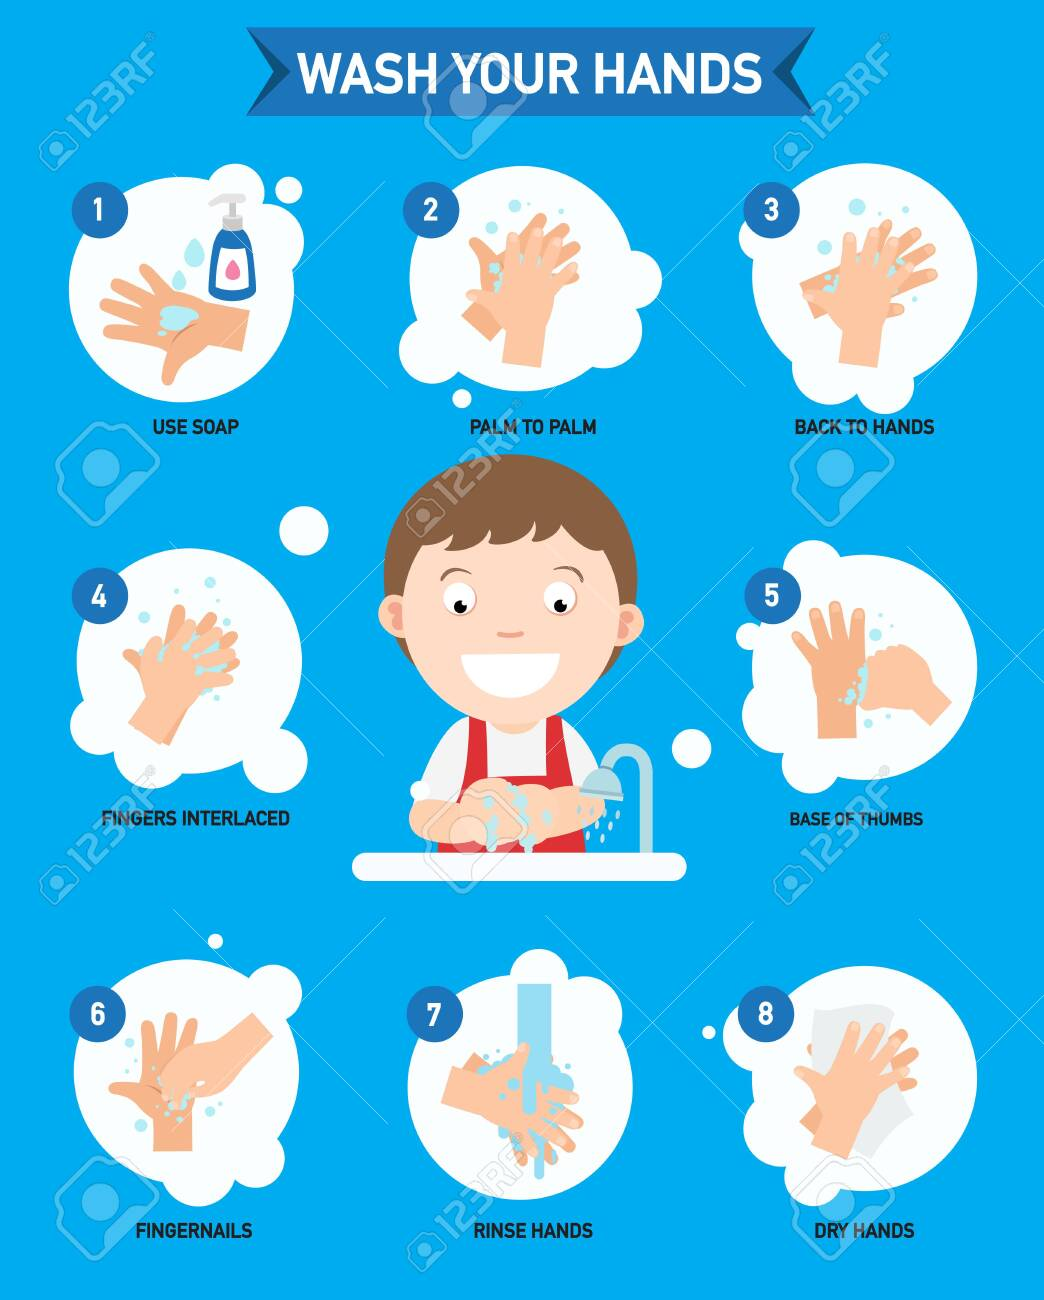 How to washing hands properly infographic, vector illustration. - 124349115